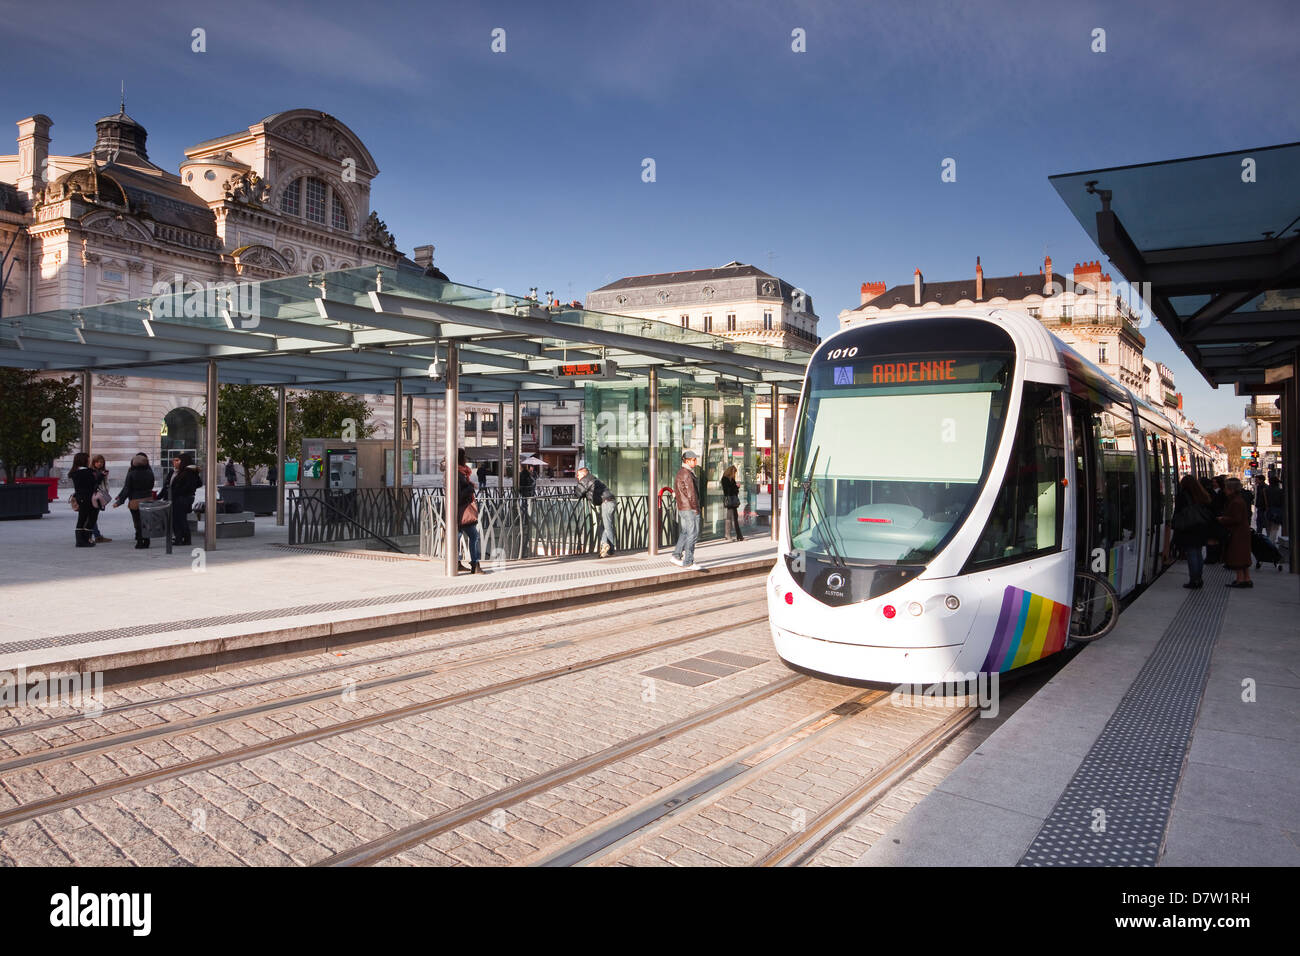 A tram pulls into the station at Place du Ralliement, Angers, Maine-et-Loire, France - Stock Image